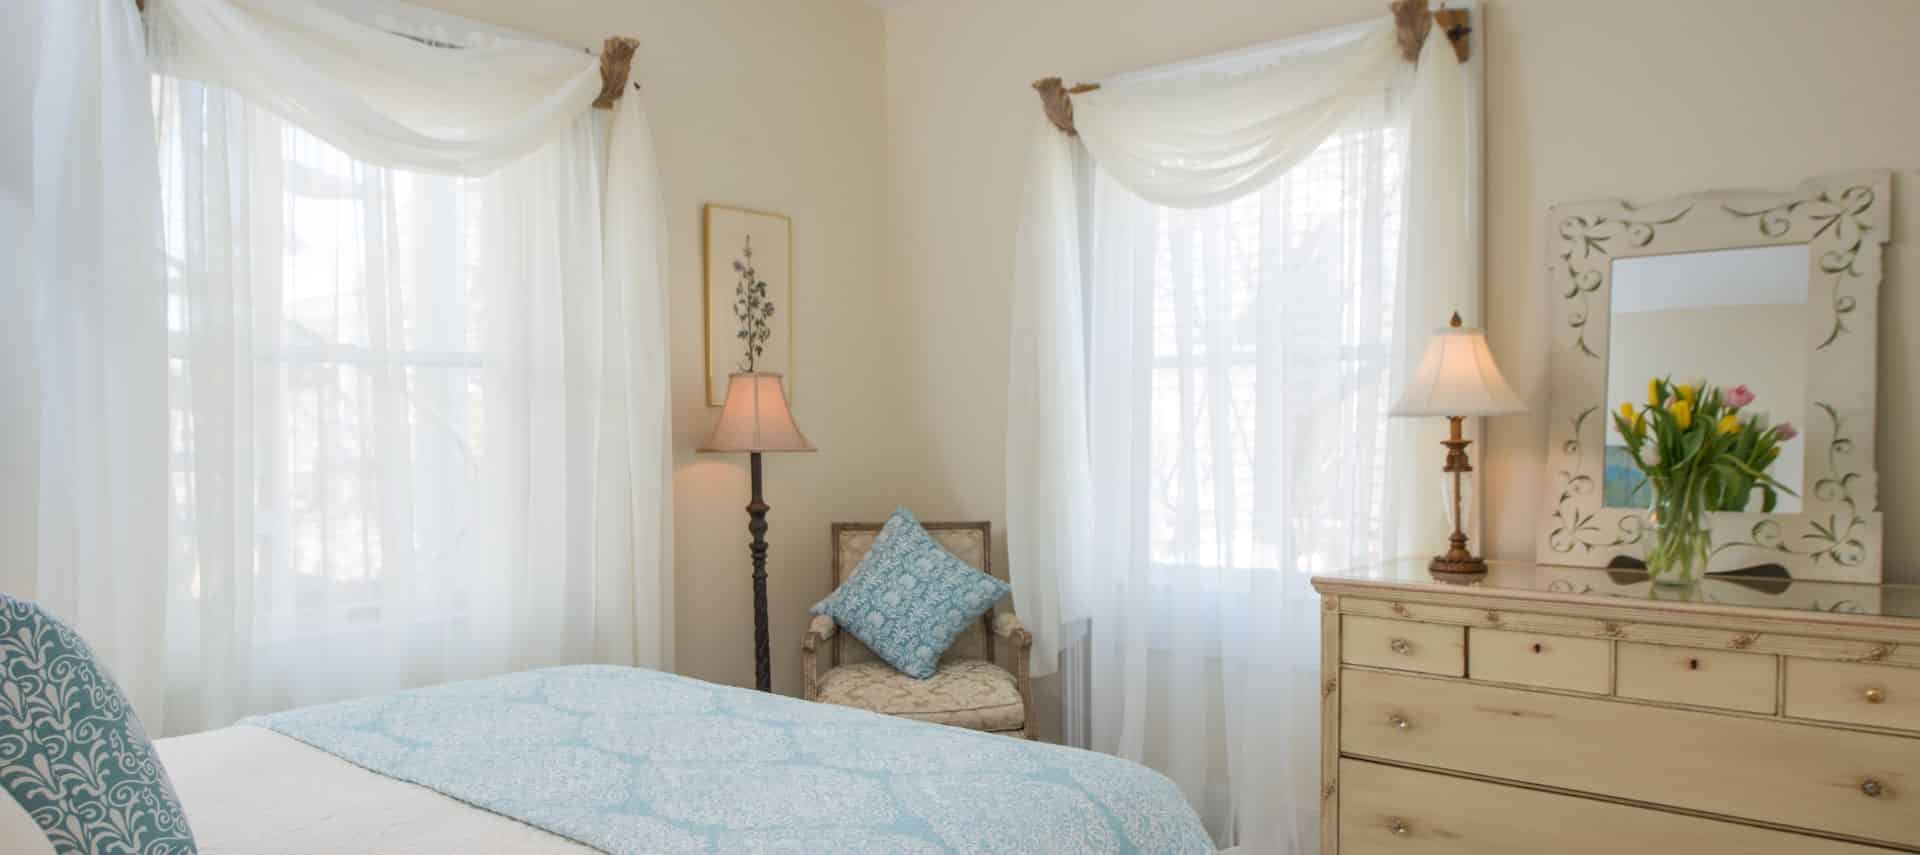 Bedroom with white and light blue bedding, upholstered vintage chair, and light wooden antique dresser with lamp, mirror, and vase full of flowers on top